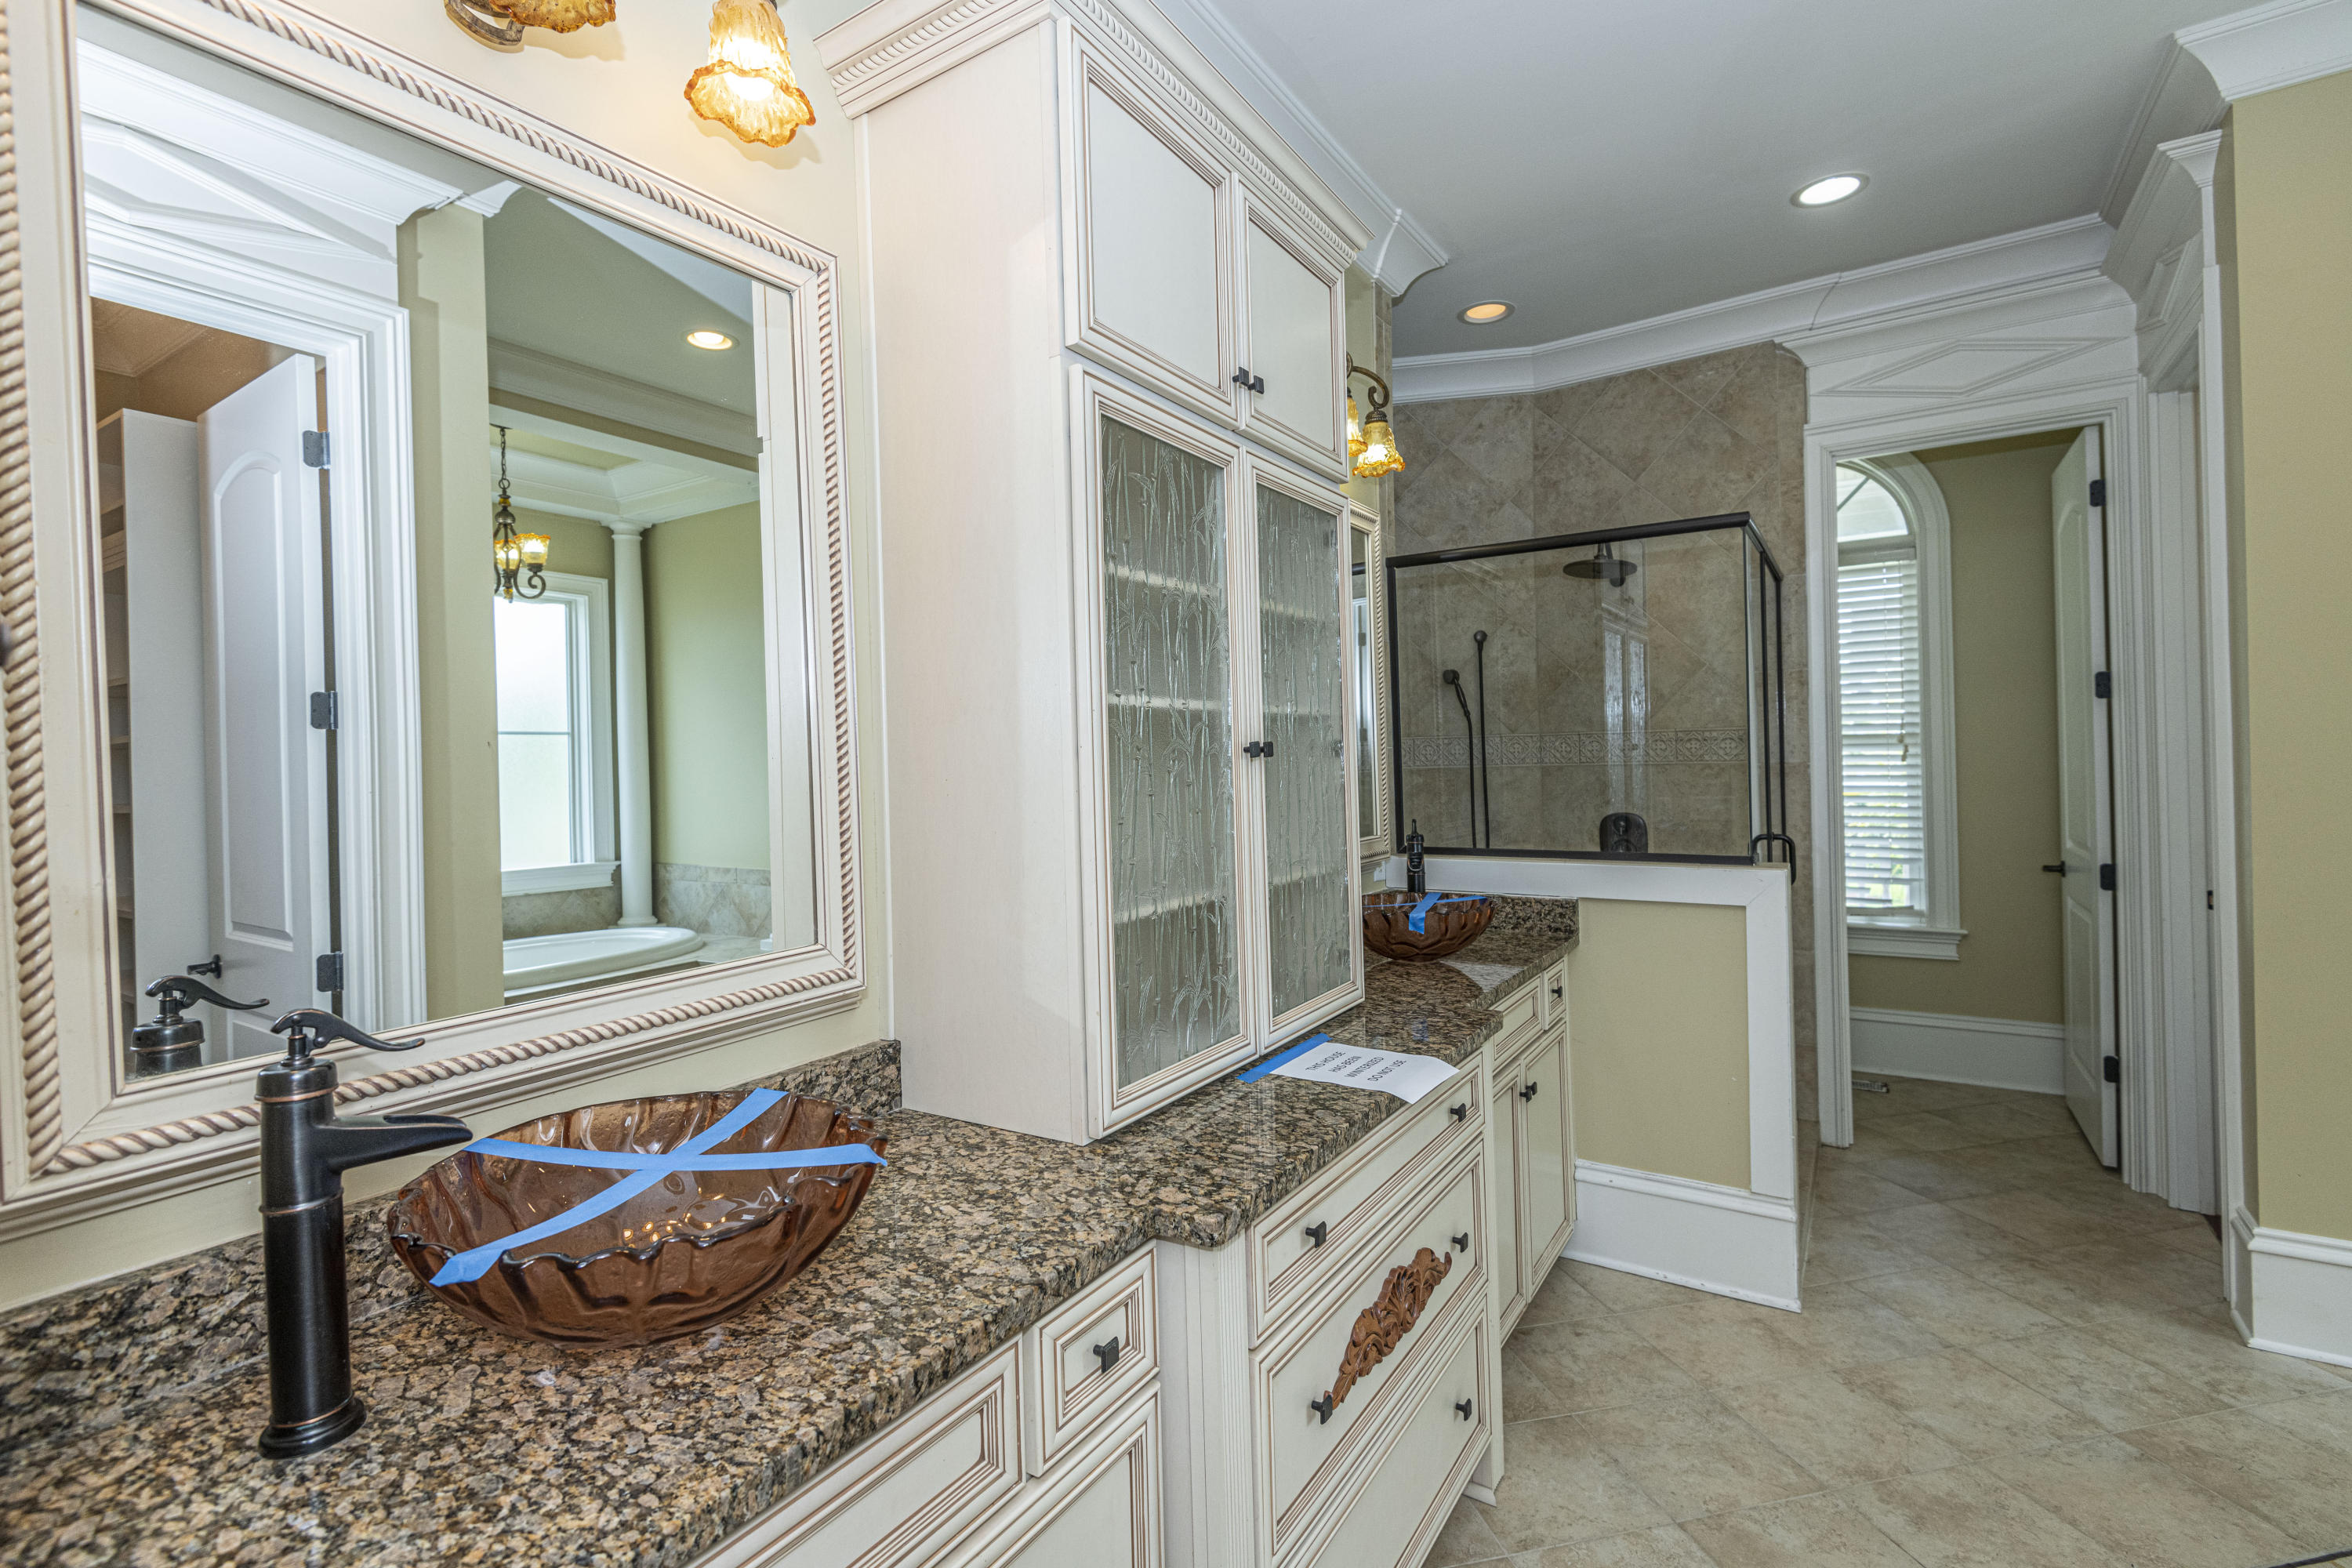 Rivertowne Country Club Homes For Sale - 1593 Rivertowne Country Club, Mount Pleasant, SC - 34